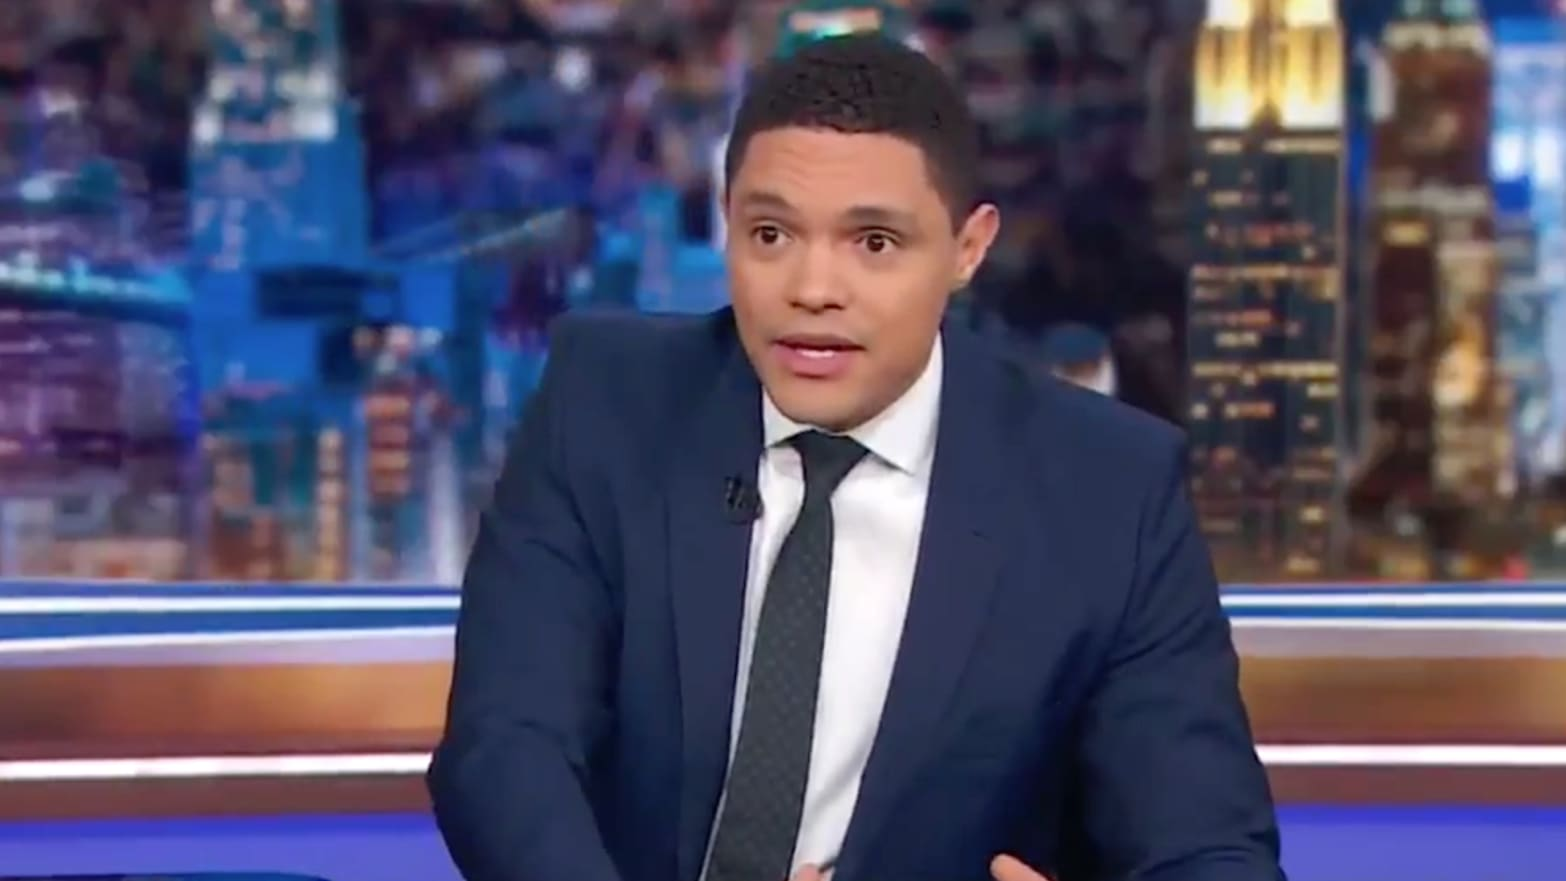 'Daily Show's' Trevor Noah Schools Audience Member Who Wants Reparations for White People